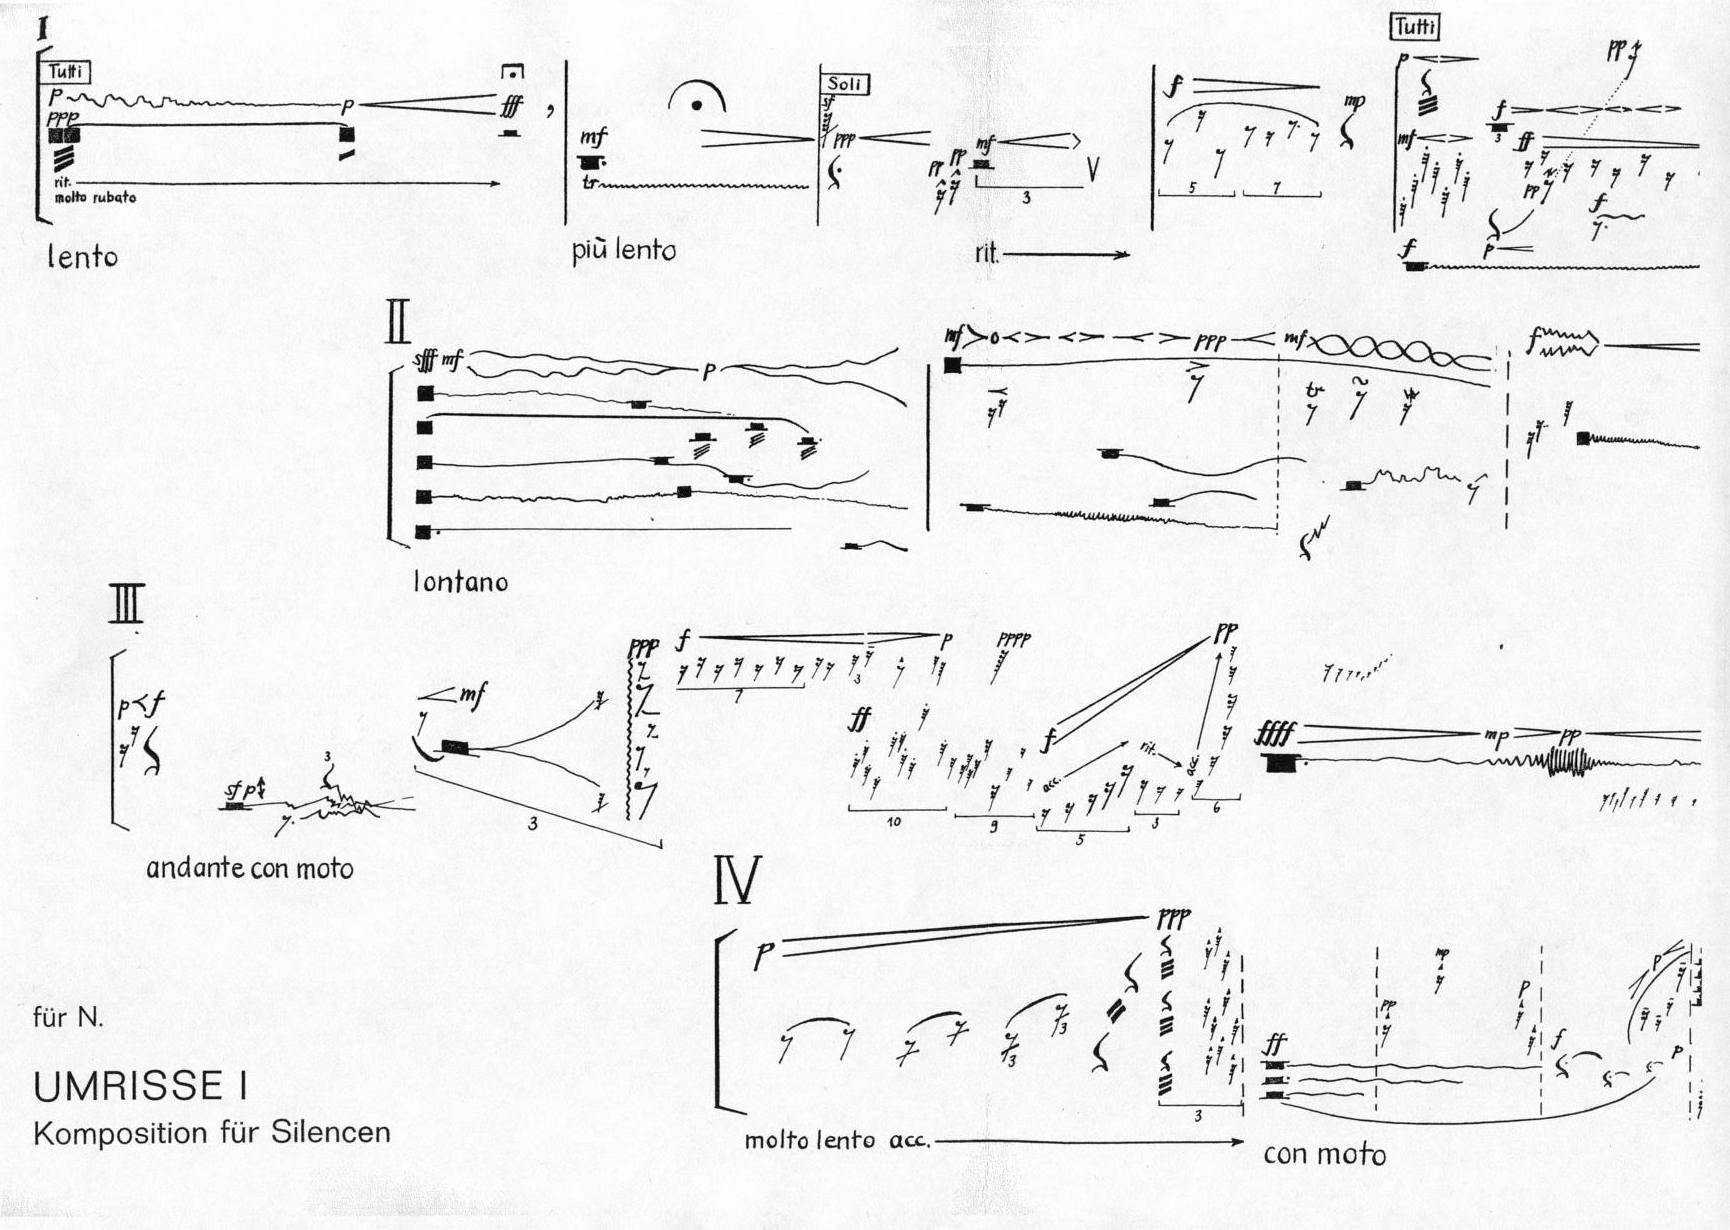 La Monte Young, Composition 1960 #7